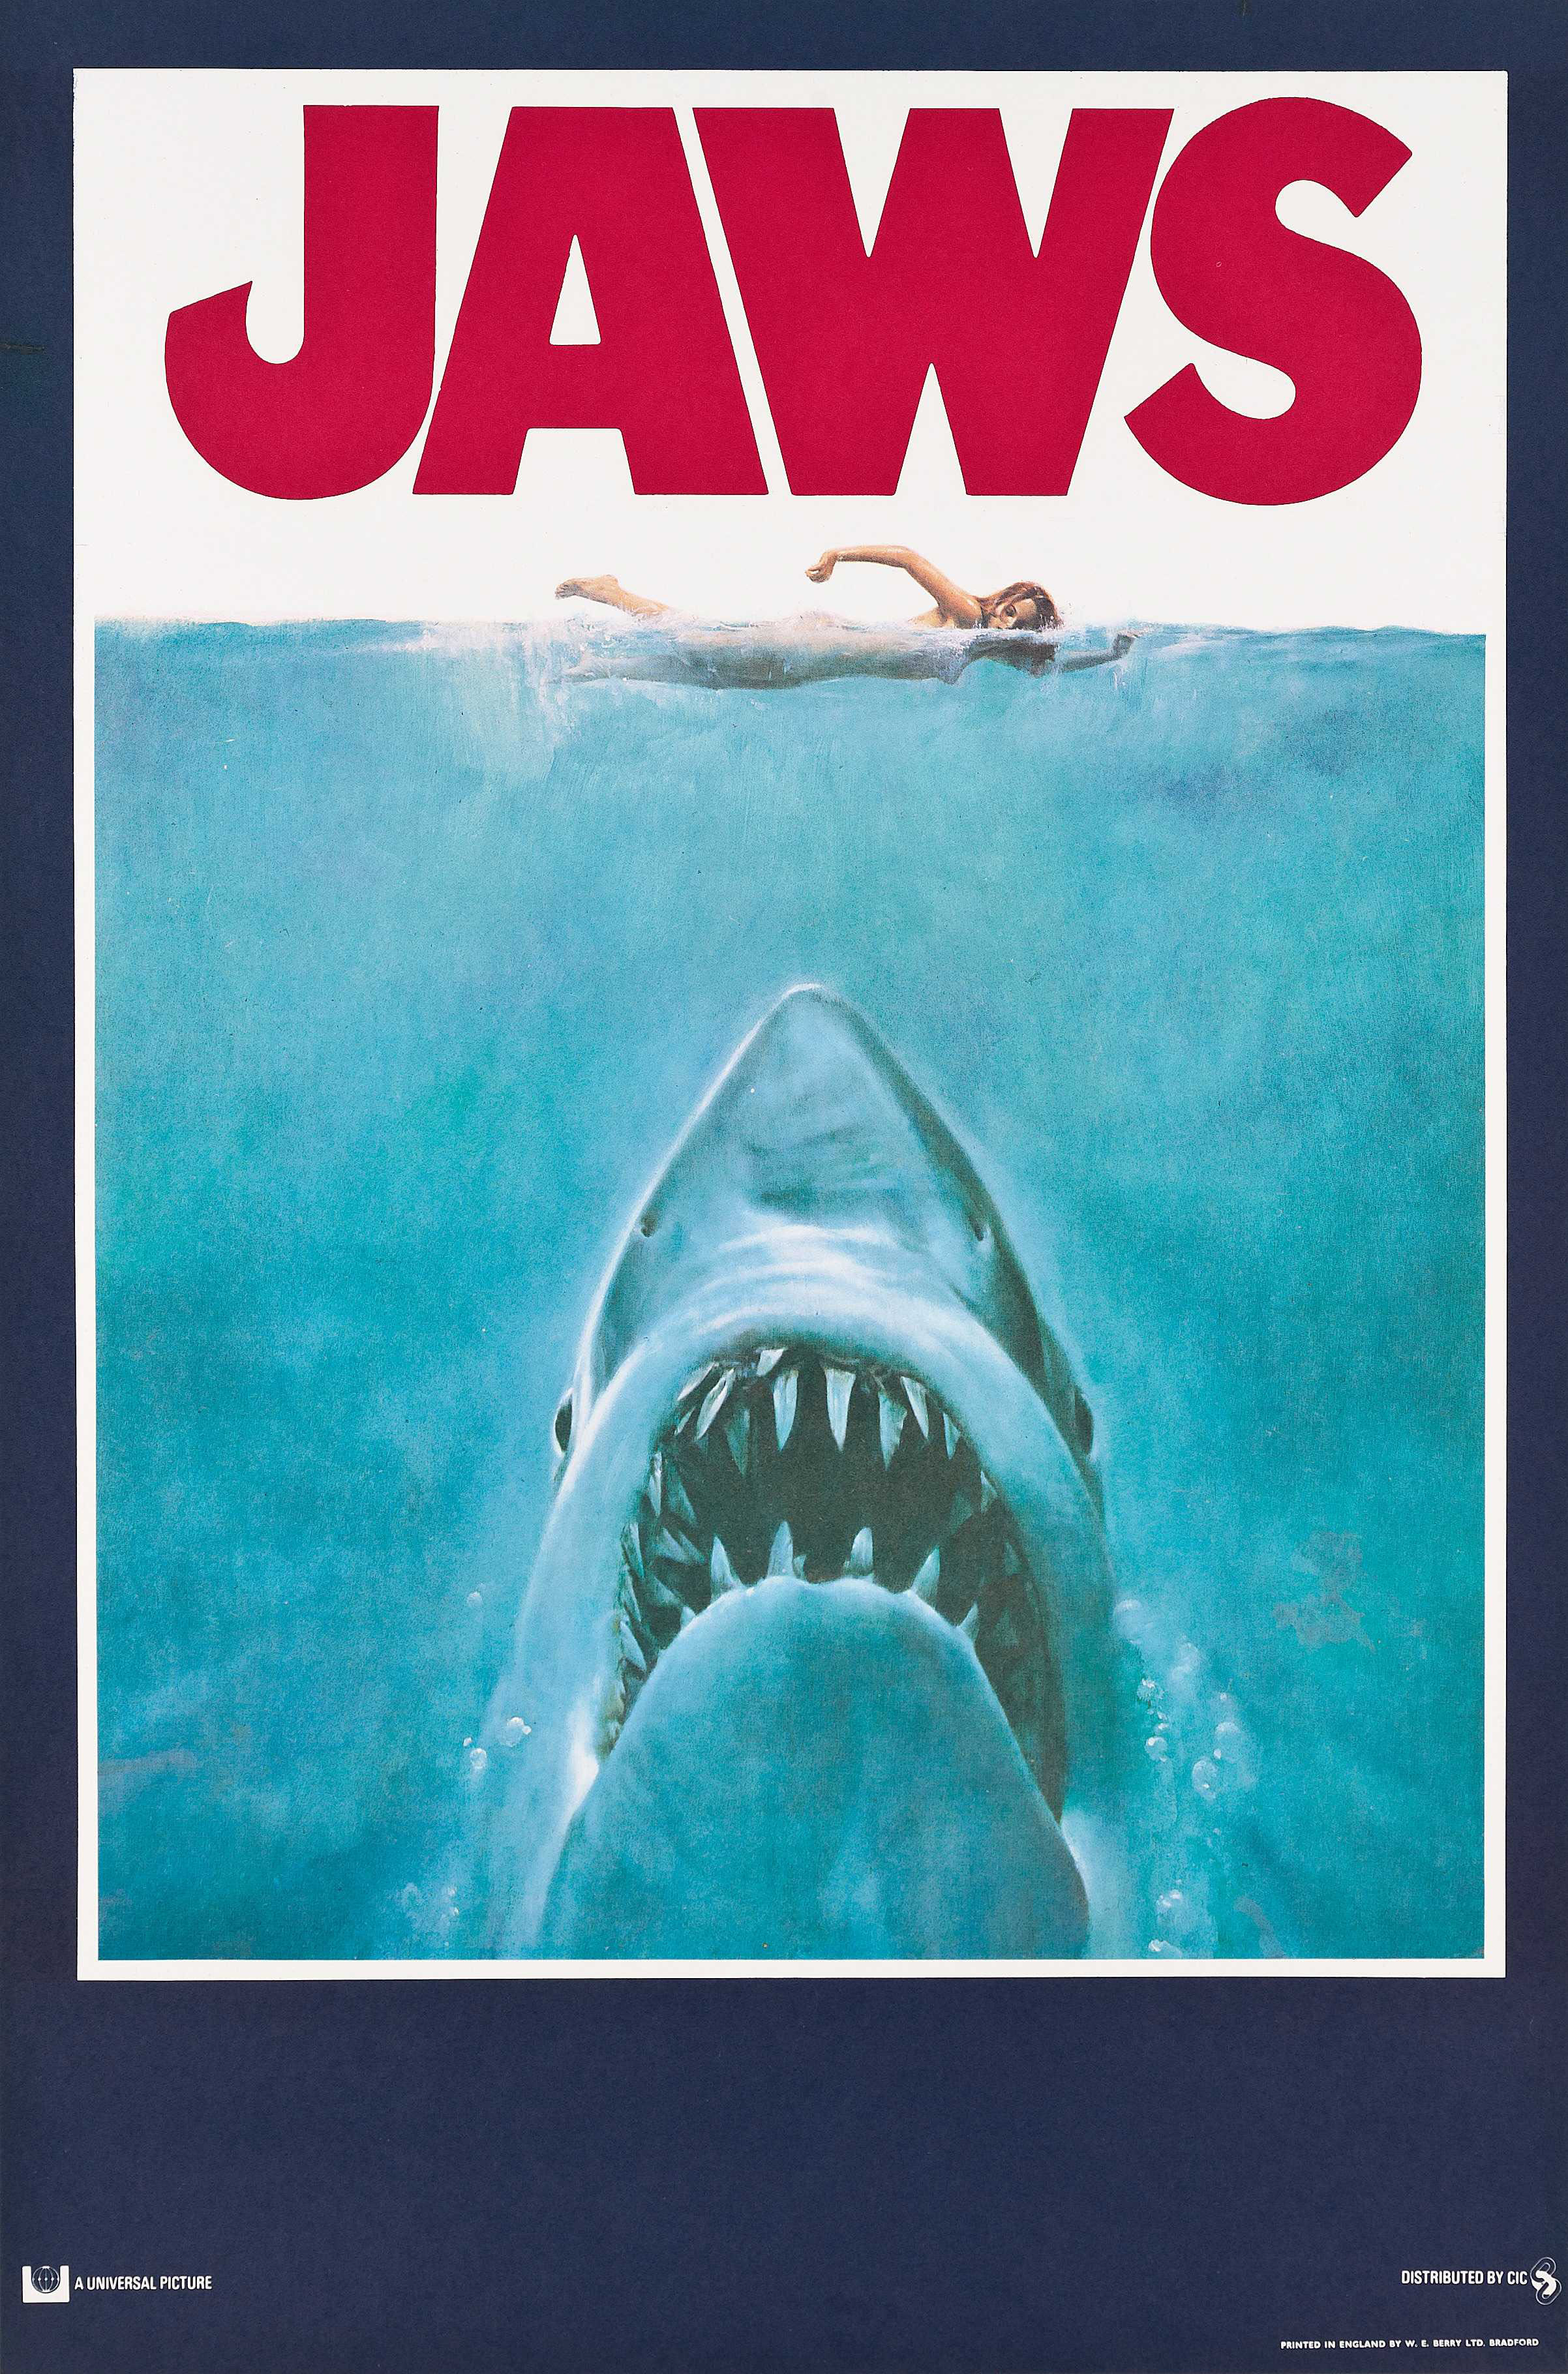 42 years ago �jaws� changed movie history � action a go